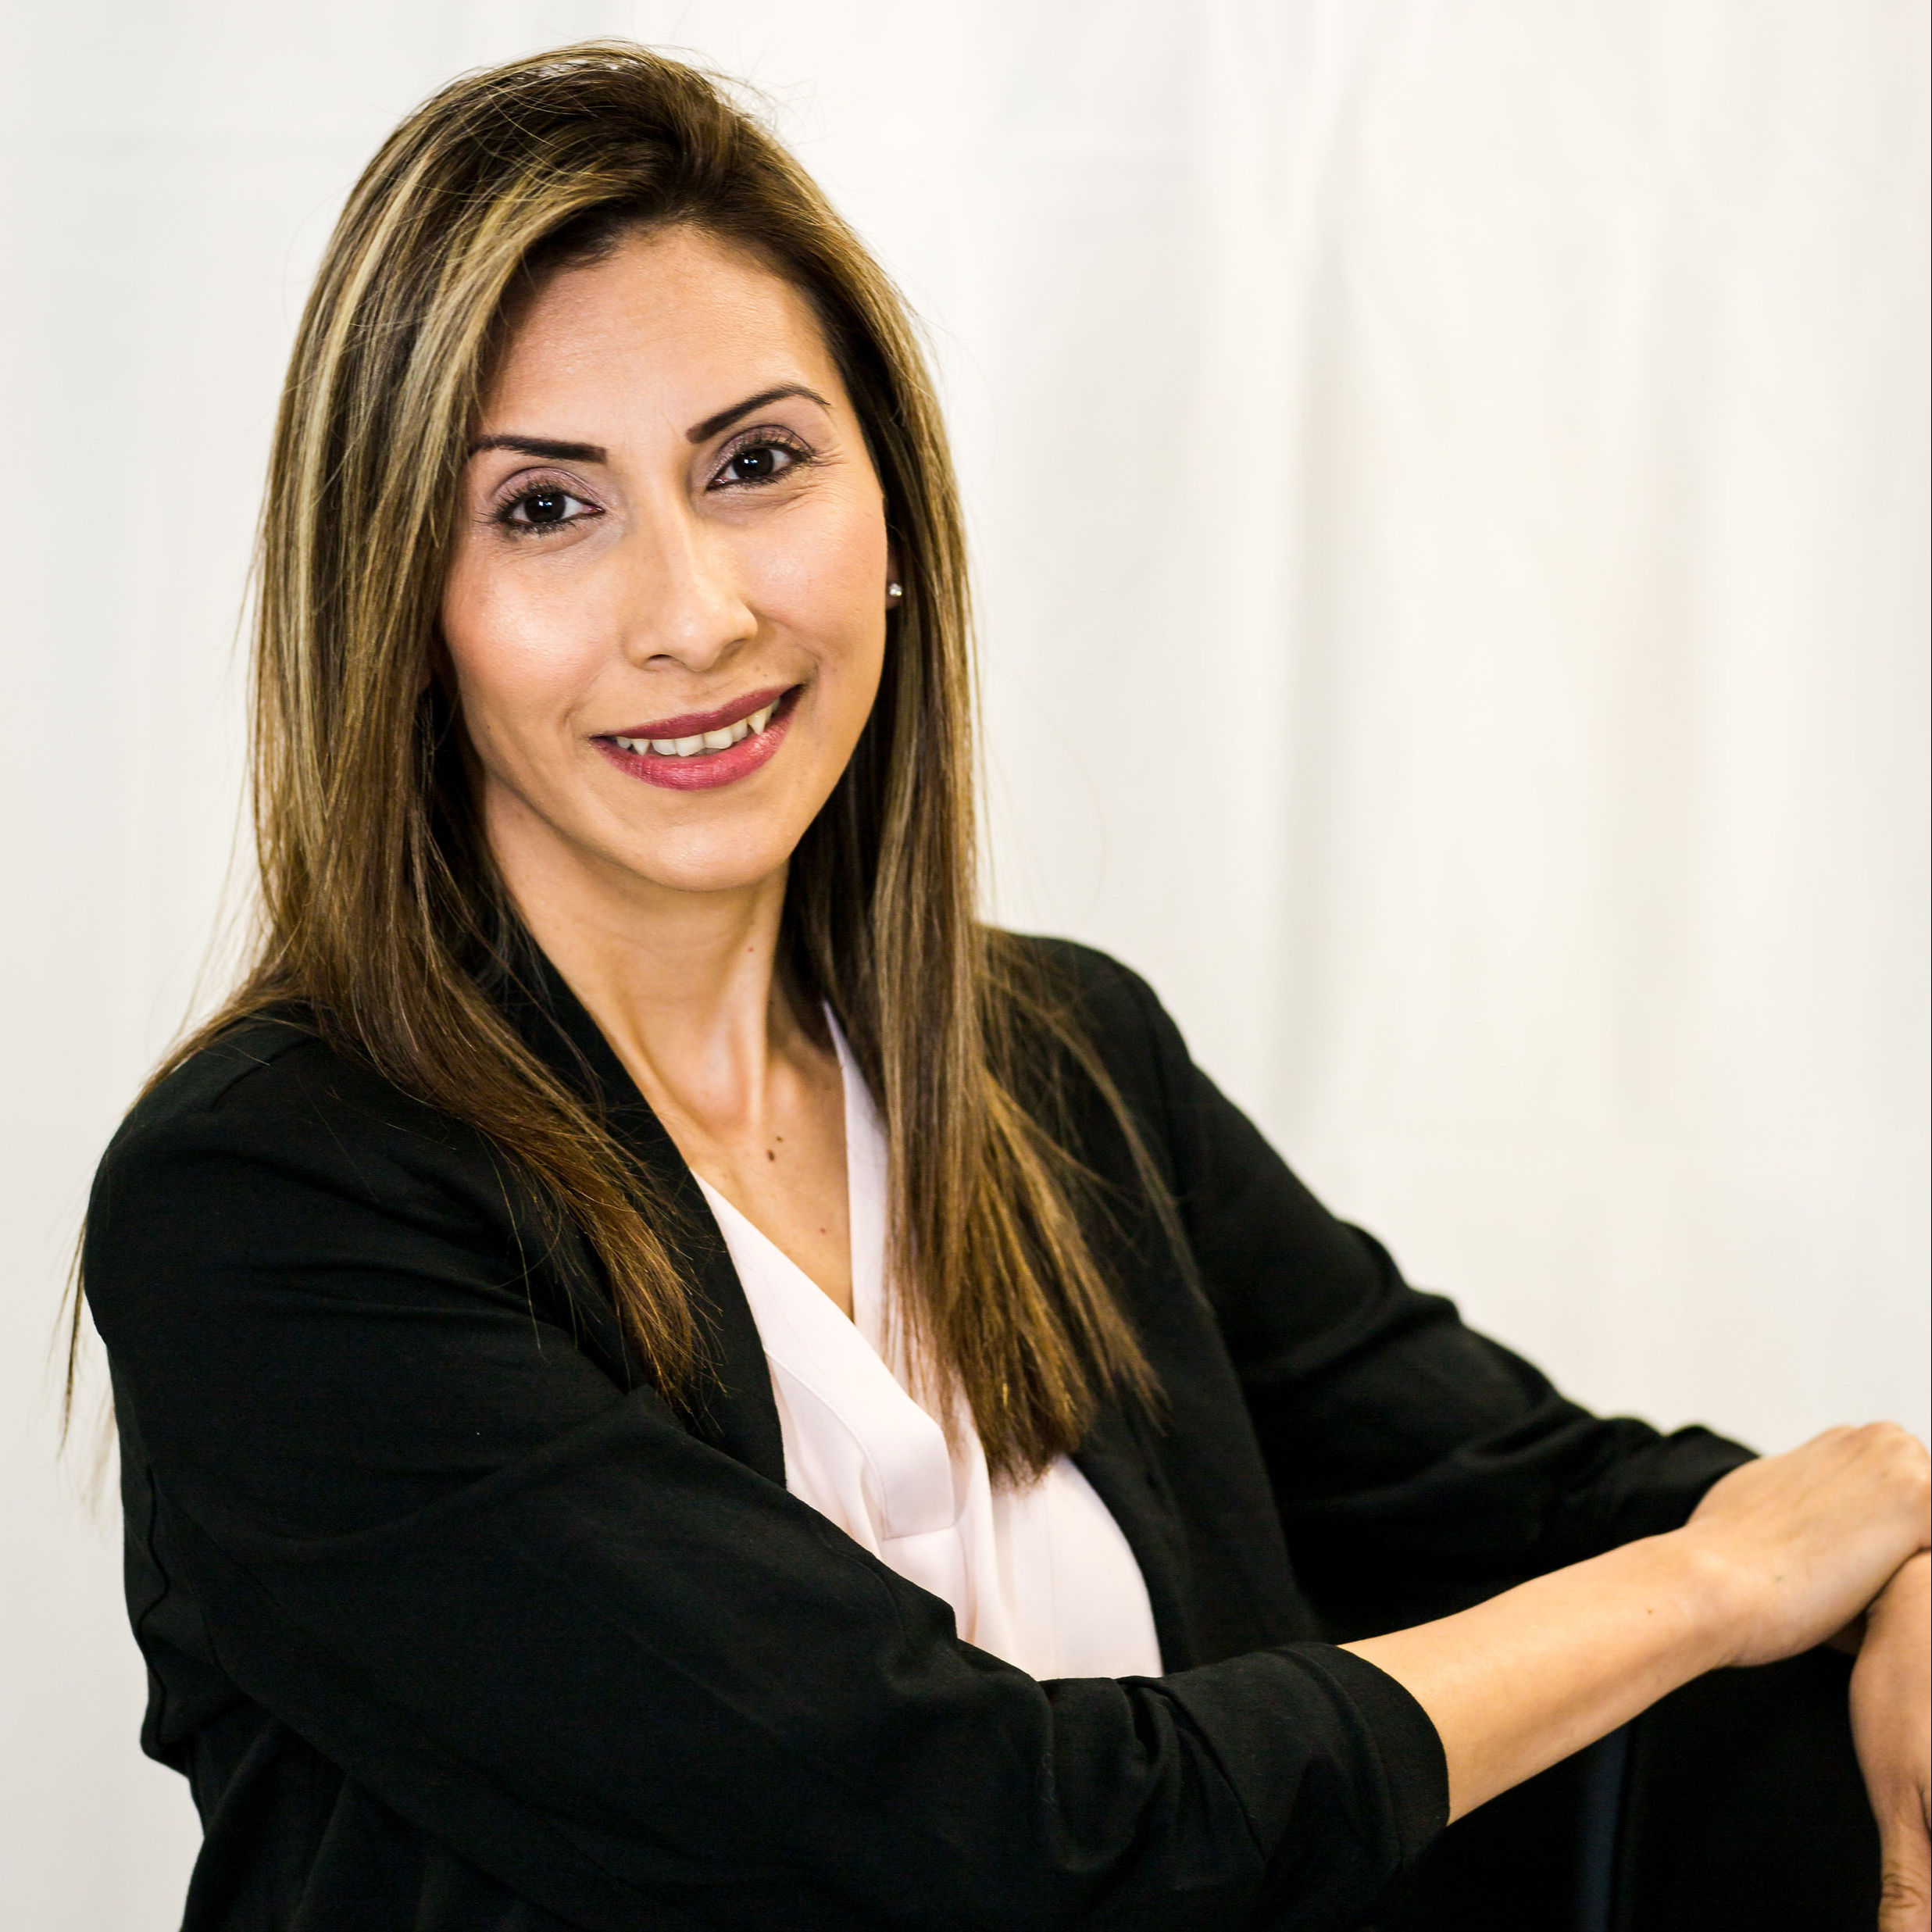 photo of Ana Maria Kourtesis